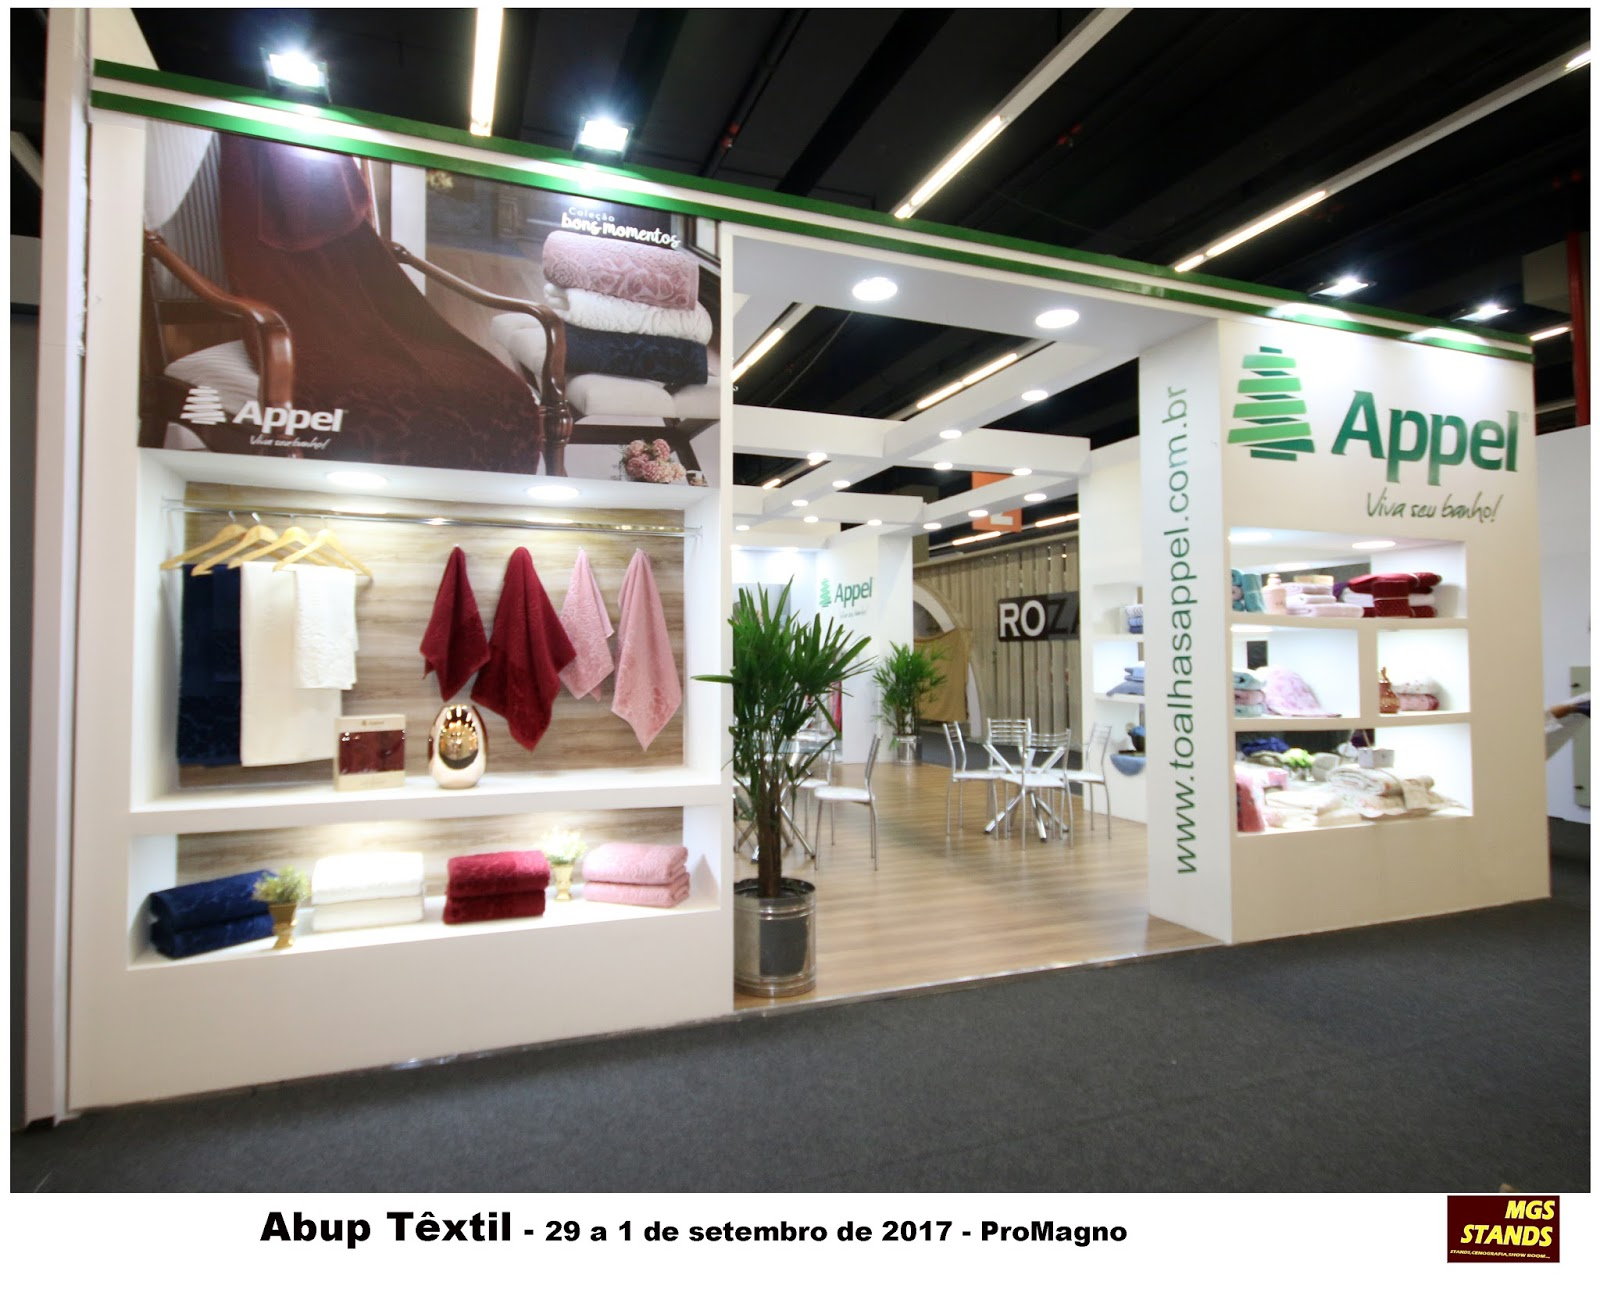 Mgs Abup T Xtil 2017 -> Abup Textil